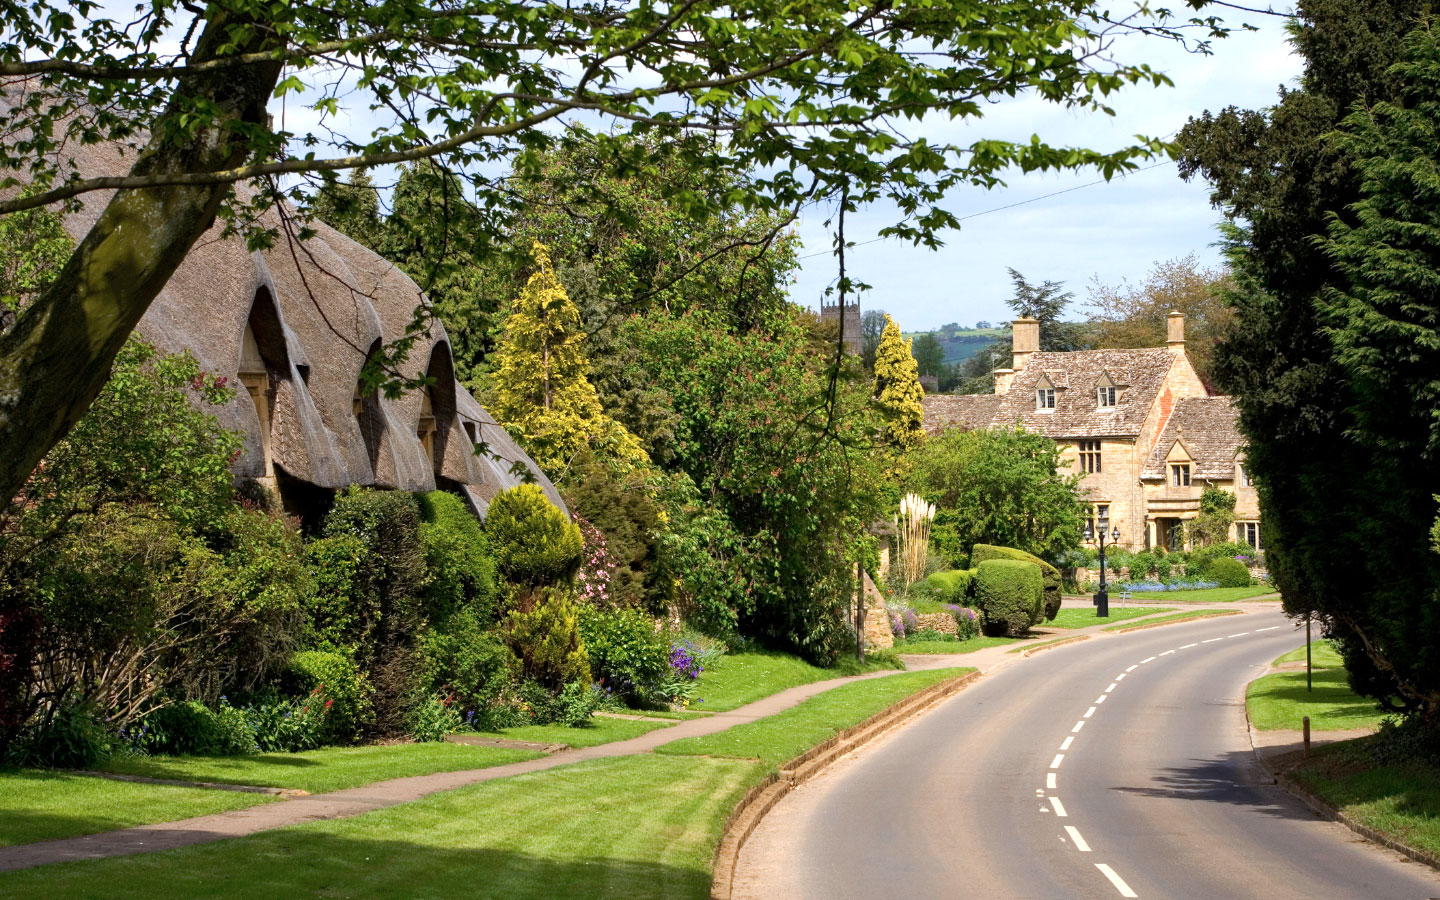 Chipping Campden cottages [photo credit Canva]